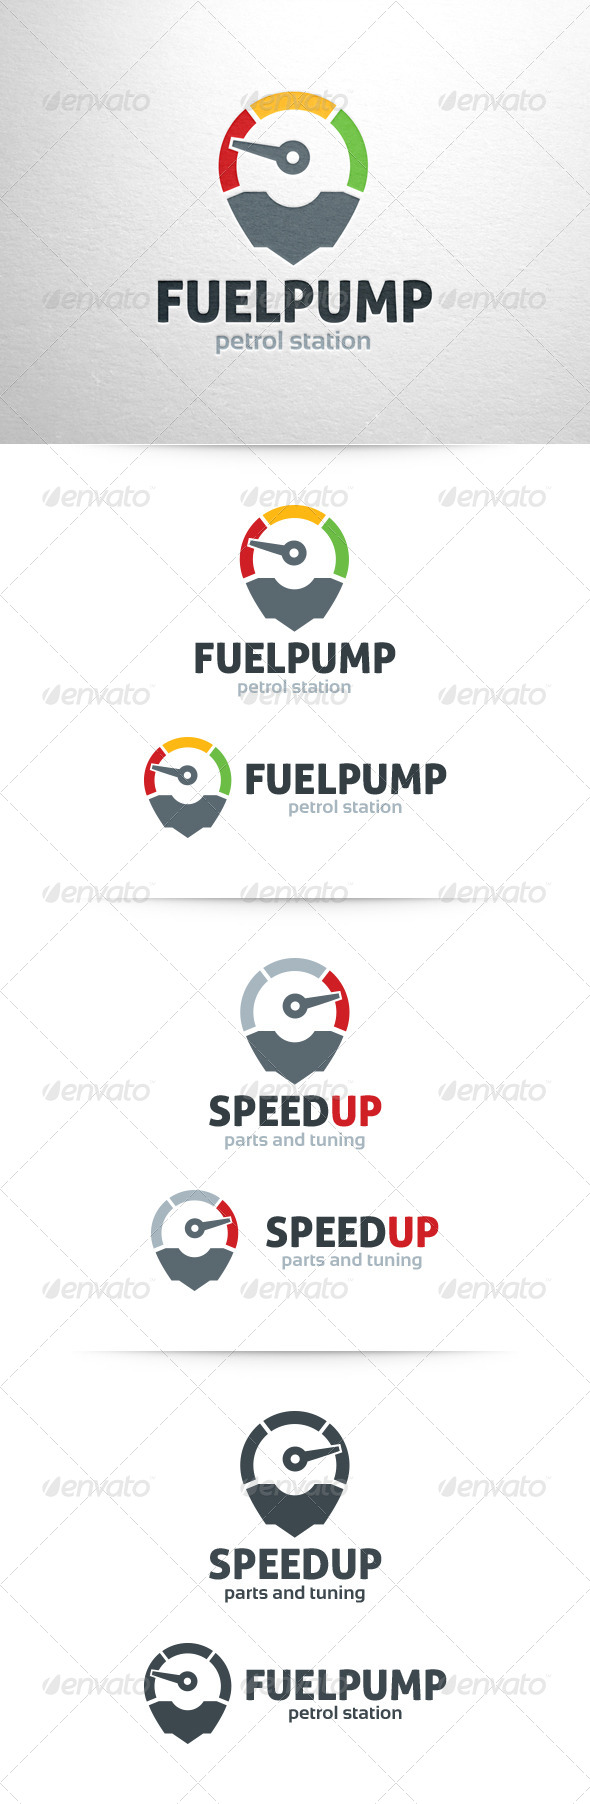 Fuel Pump / Speed Up Logo